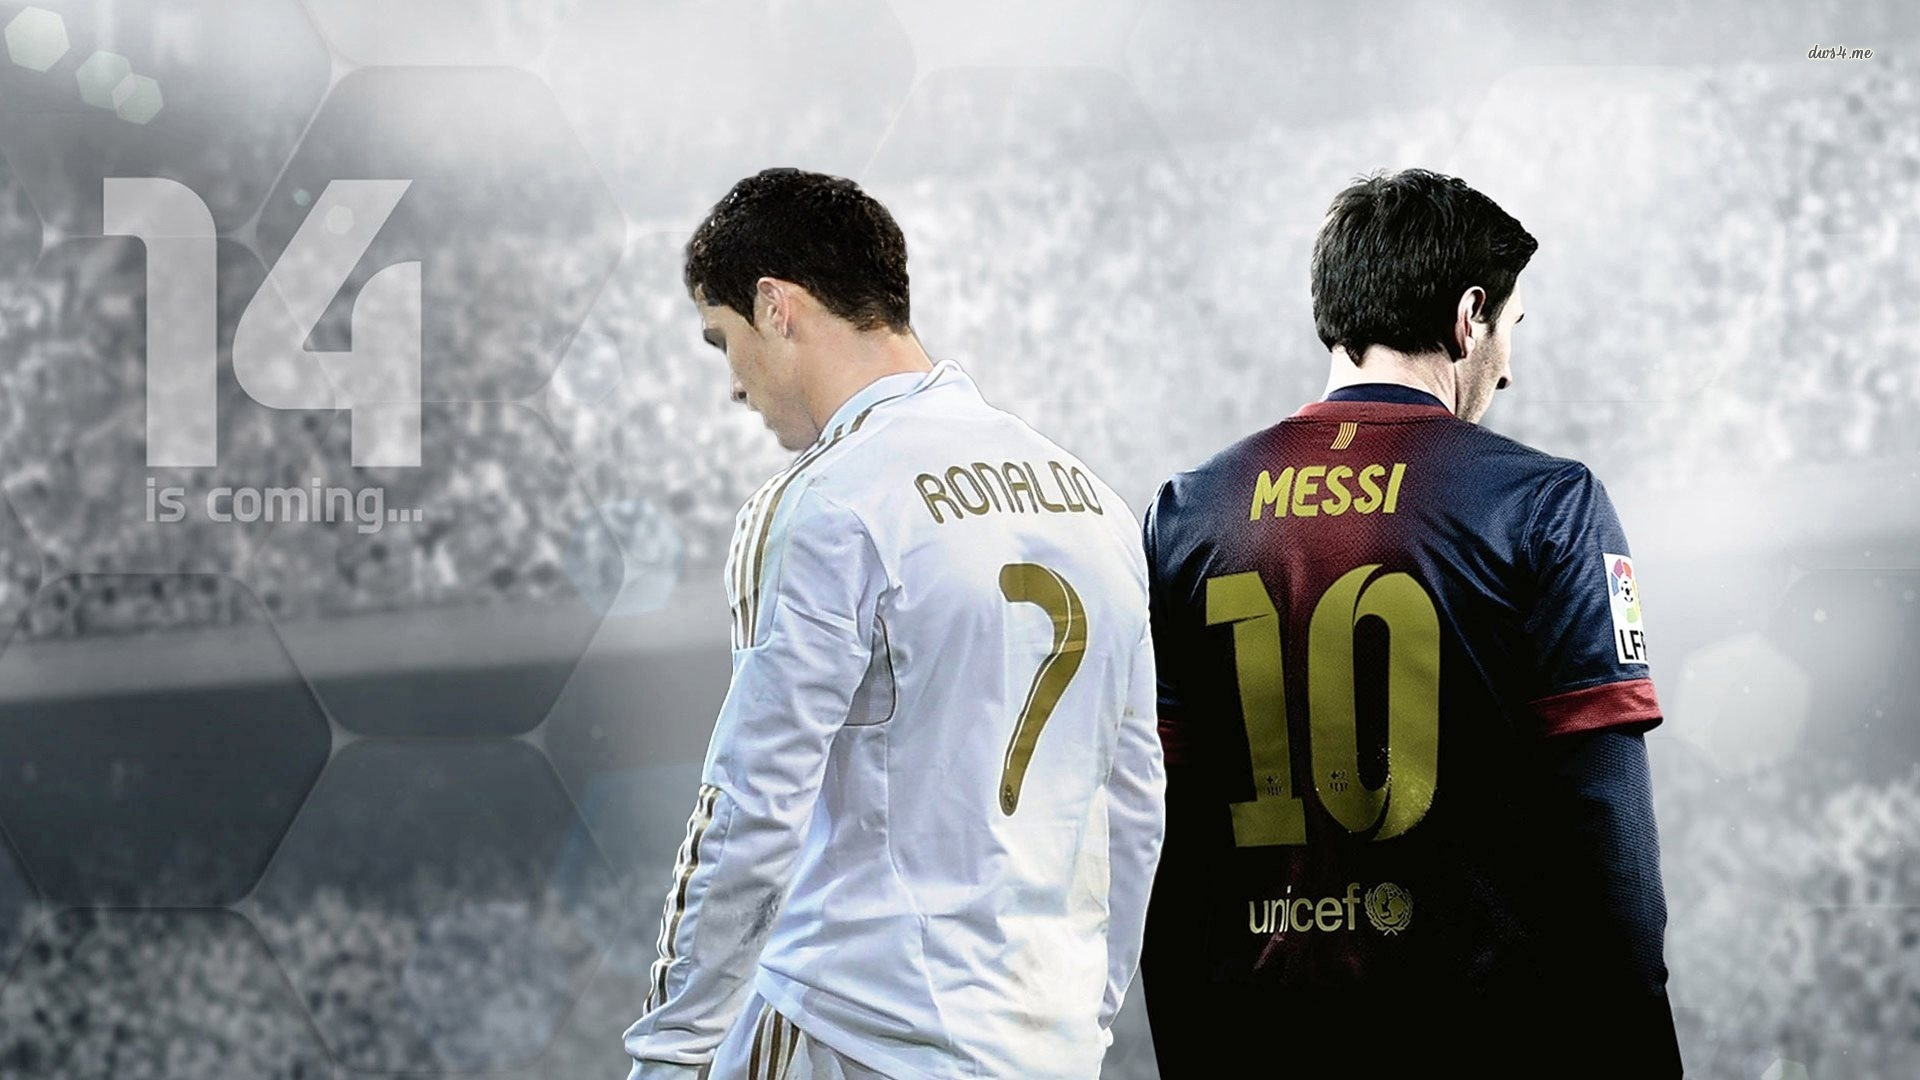 Cristiano Ronaldo Wallpapers HD Messi players